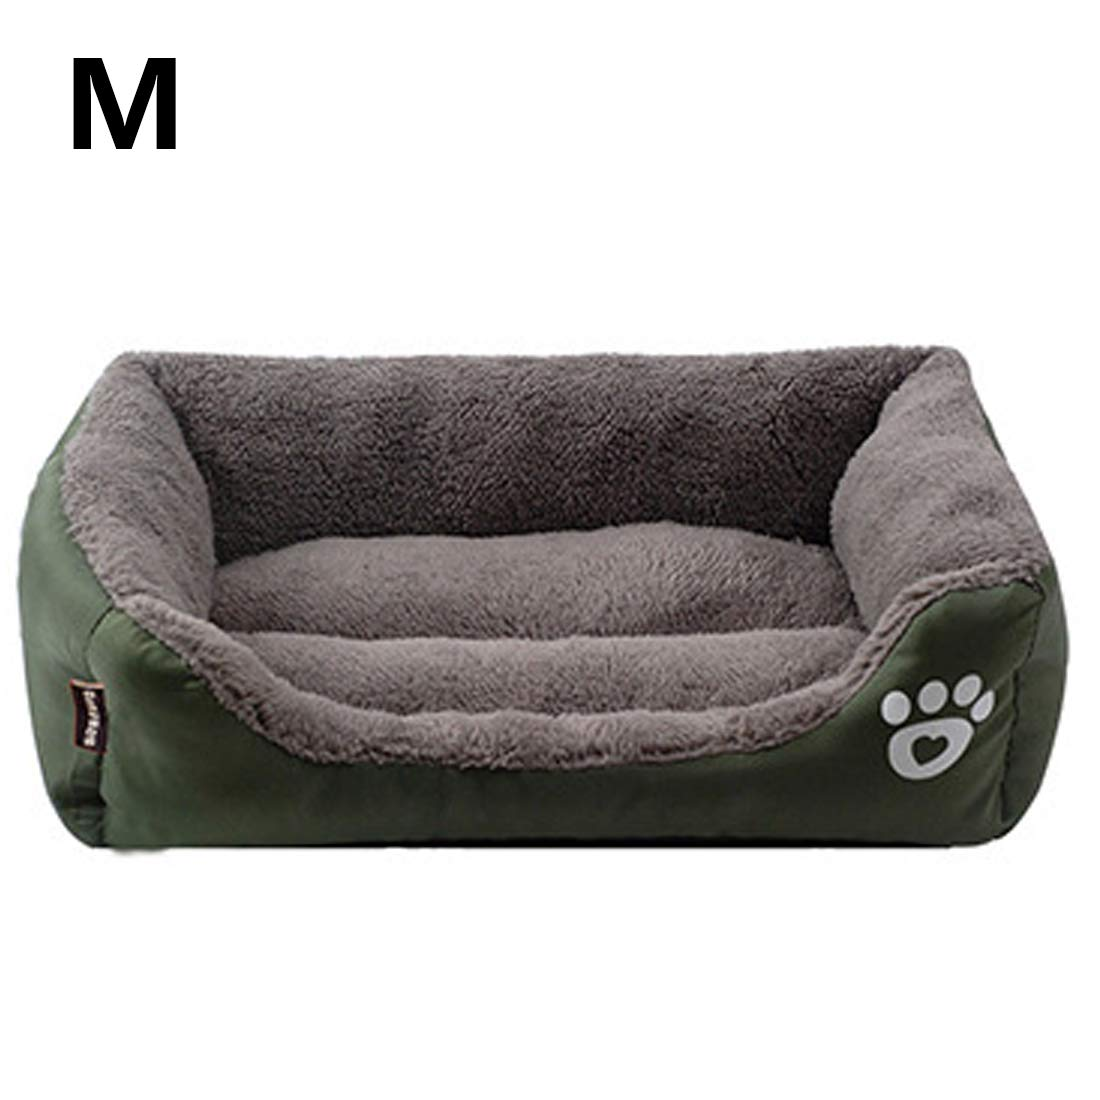 Blackish green 68X55X16cm Blackish green 68X55X16cm Cookisn Big Warming Dog House Soft Material Nest Dog Baskets Fall and Winter Warm Kennel for Cat Puppy Bed for Dog Cat Pet Dog Beds Blackish Green 68X55X16cm